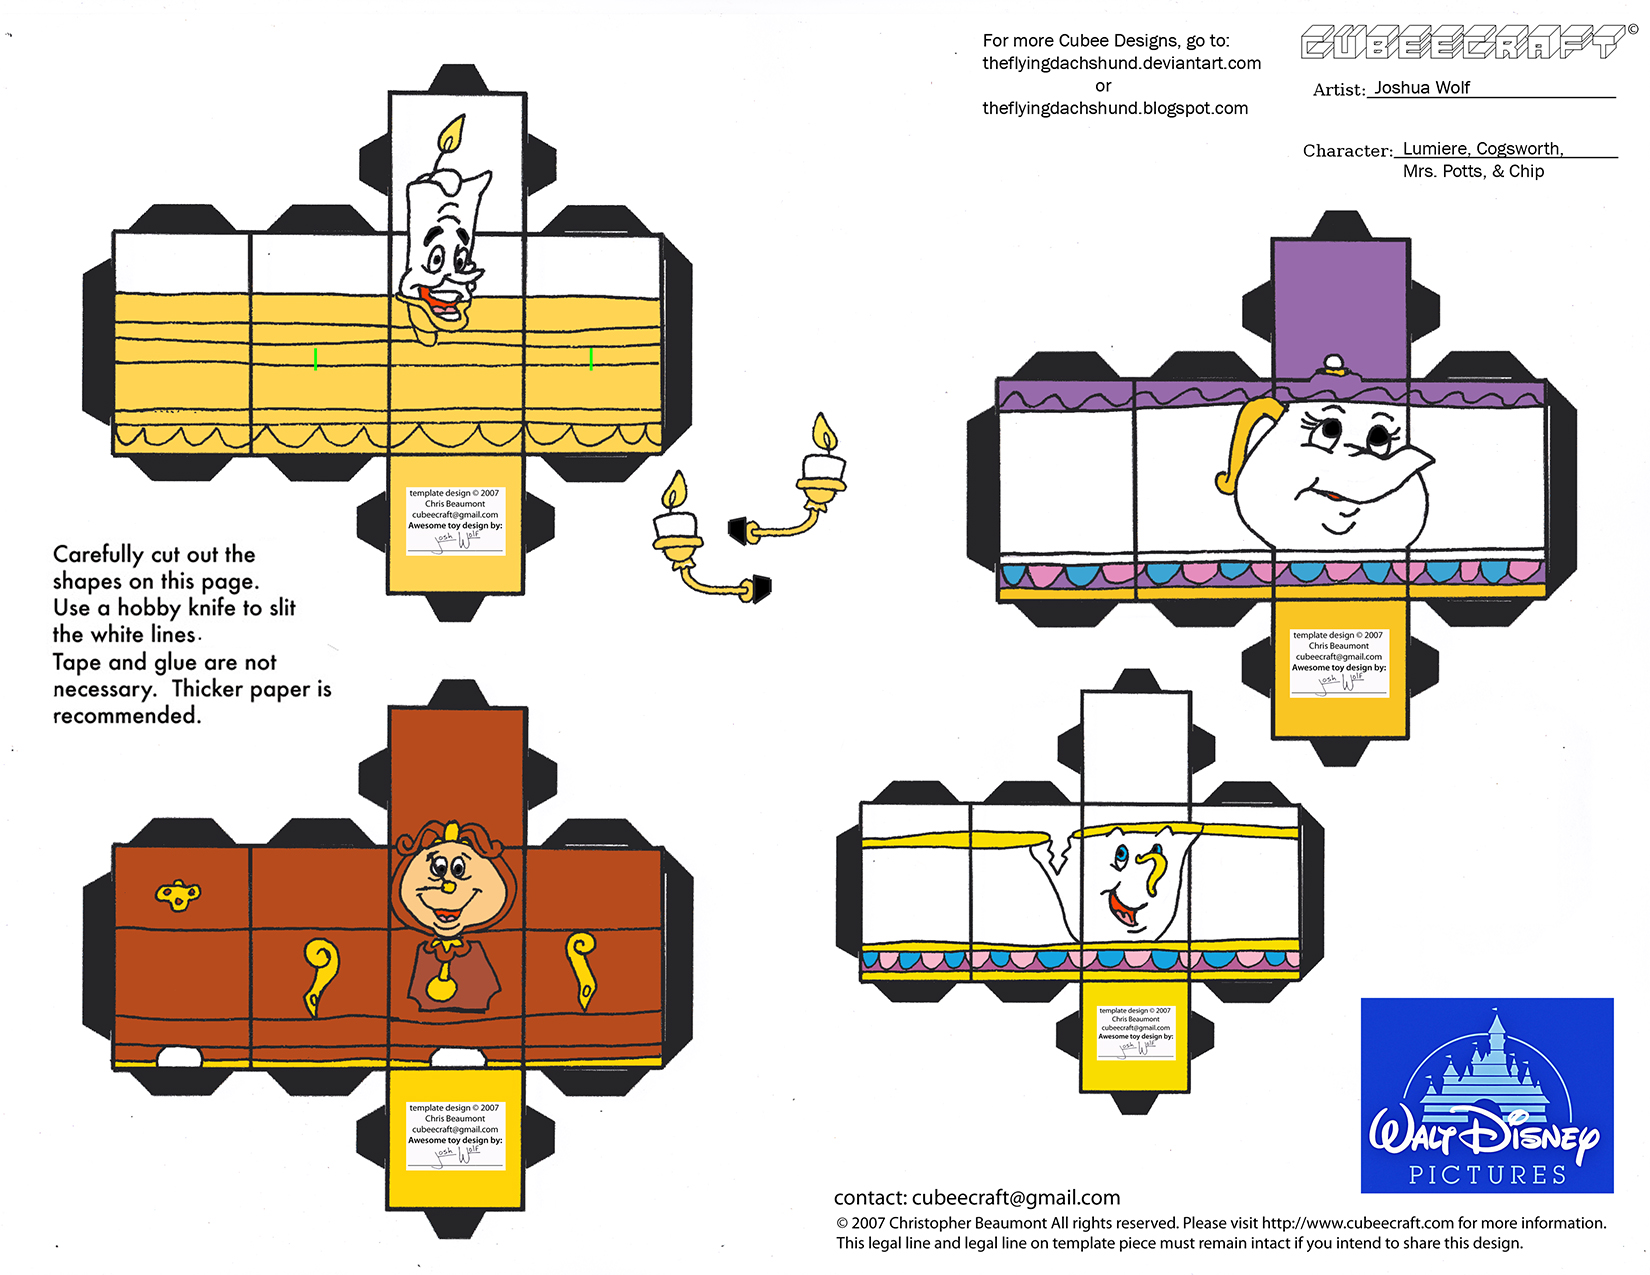 Dis44: Lumiere, Cogsworth, Mrs Potts, Chip Cubees